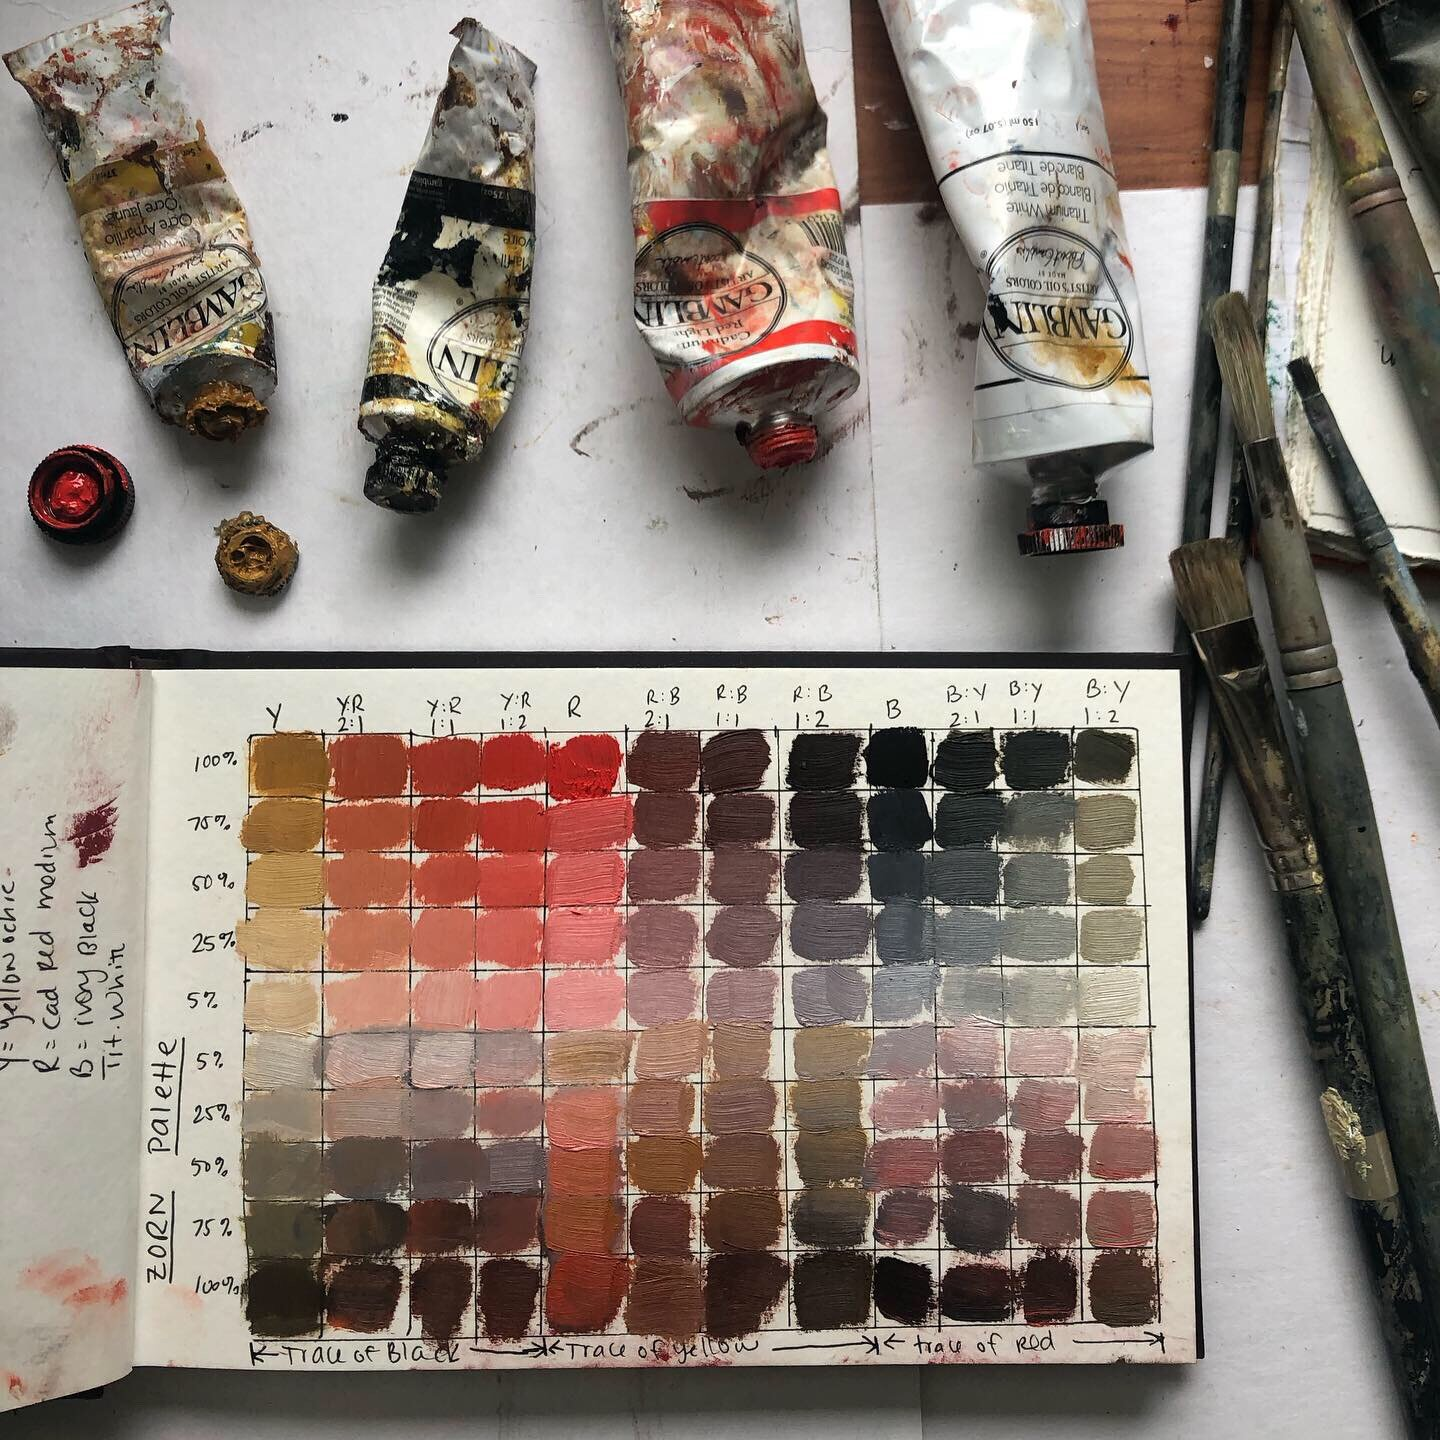 Here's a gorgeous color chart I borrowed from  https://www.michaellynnadams.com  to get a feel for the range of available options in this palette. They are beautiful, aren't they?